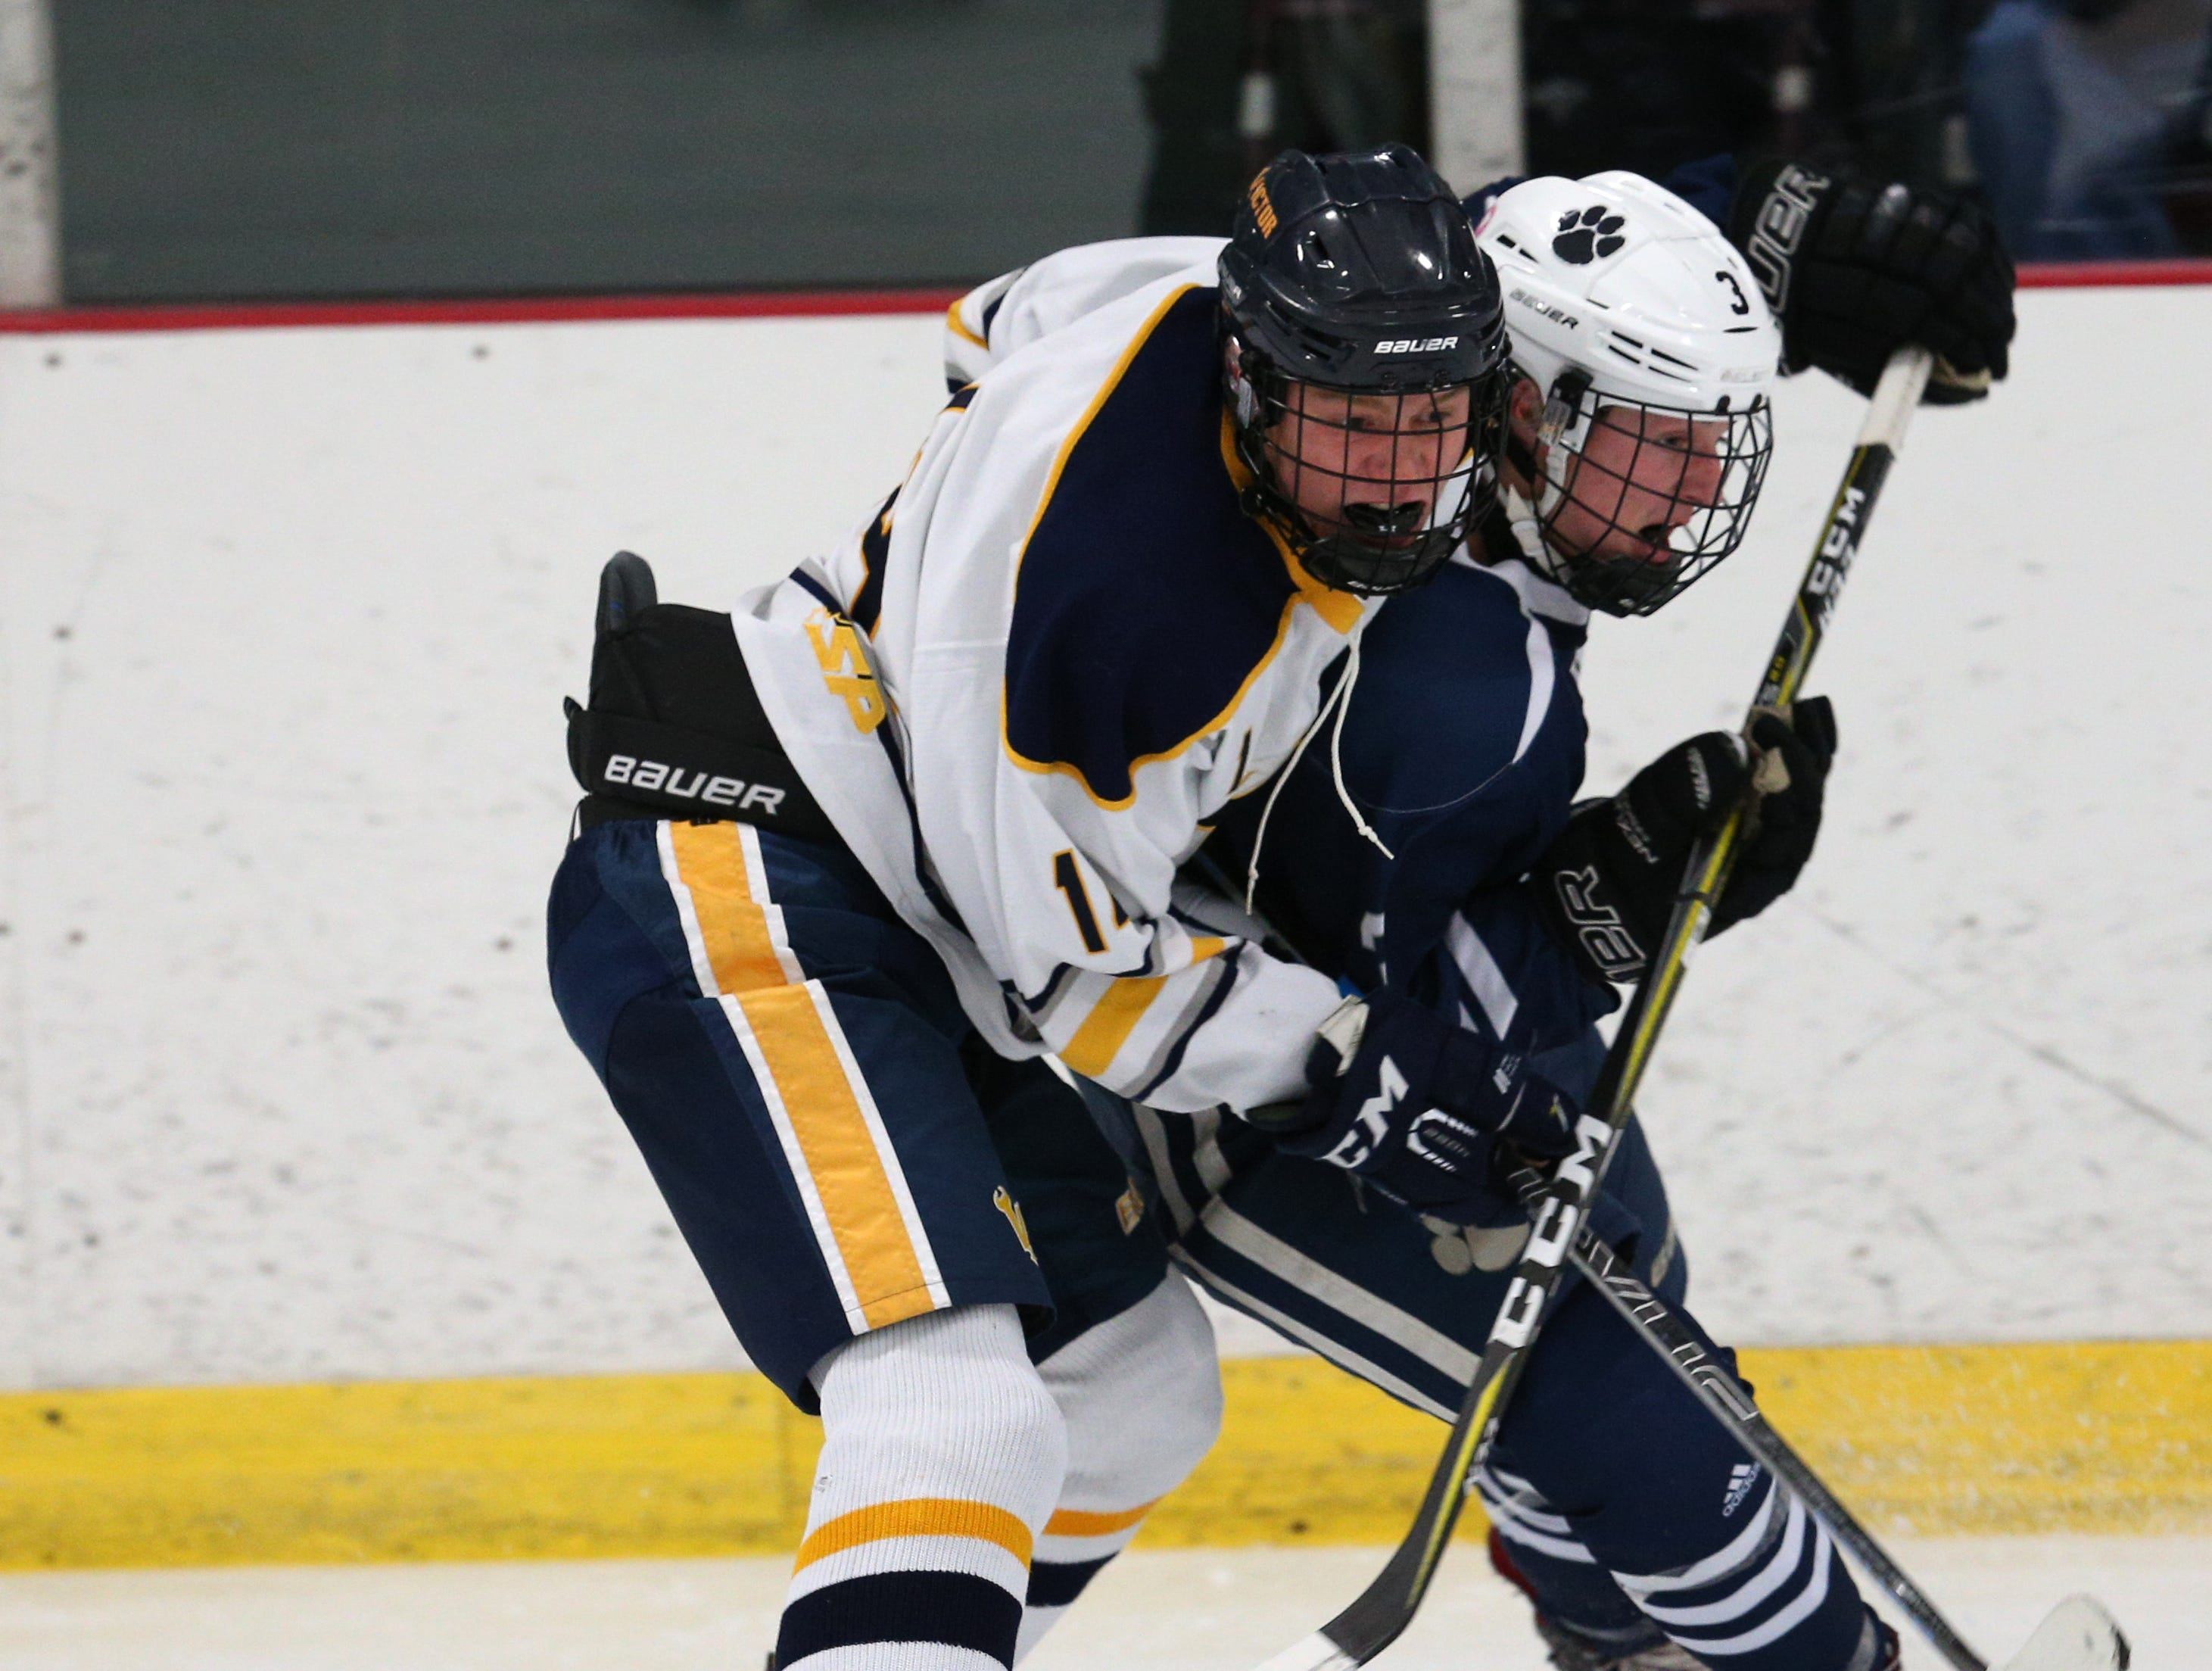 Victor #14 Peter Rydzynski against Pittsford #3 Jack Peterson.